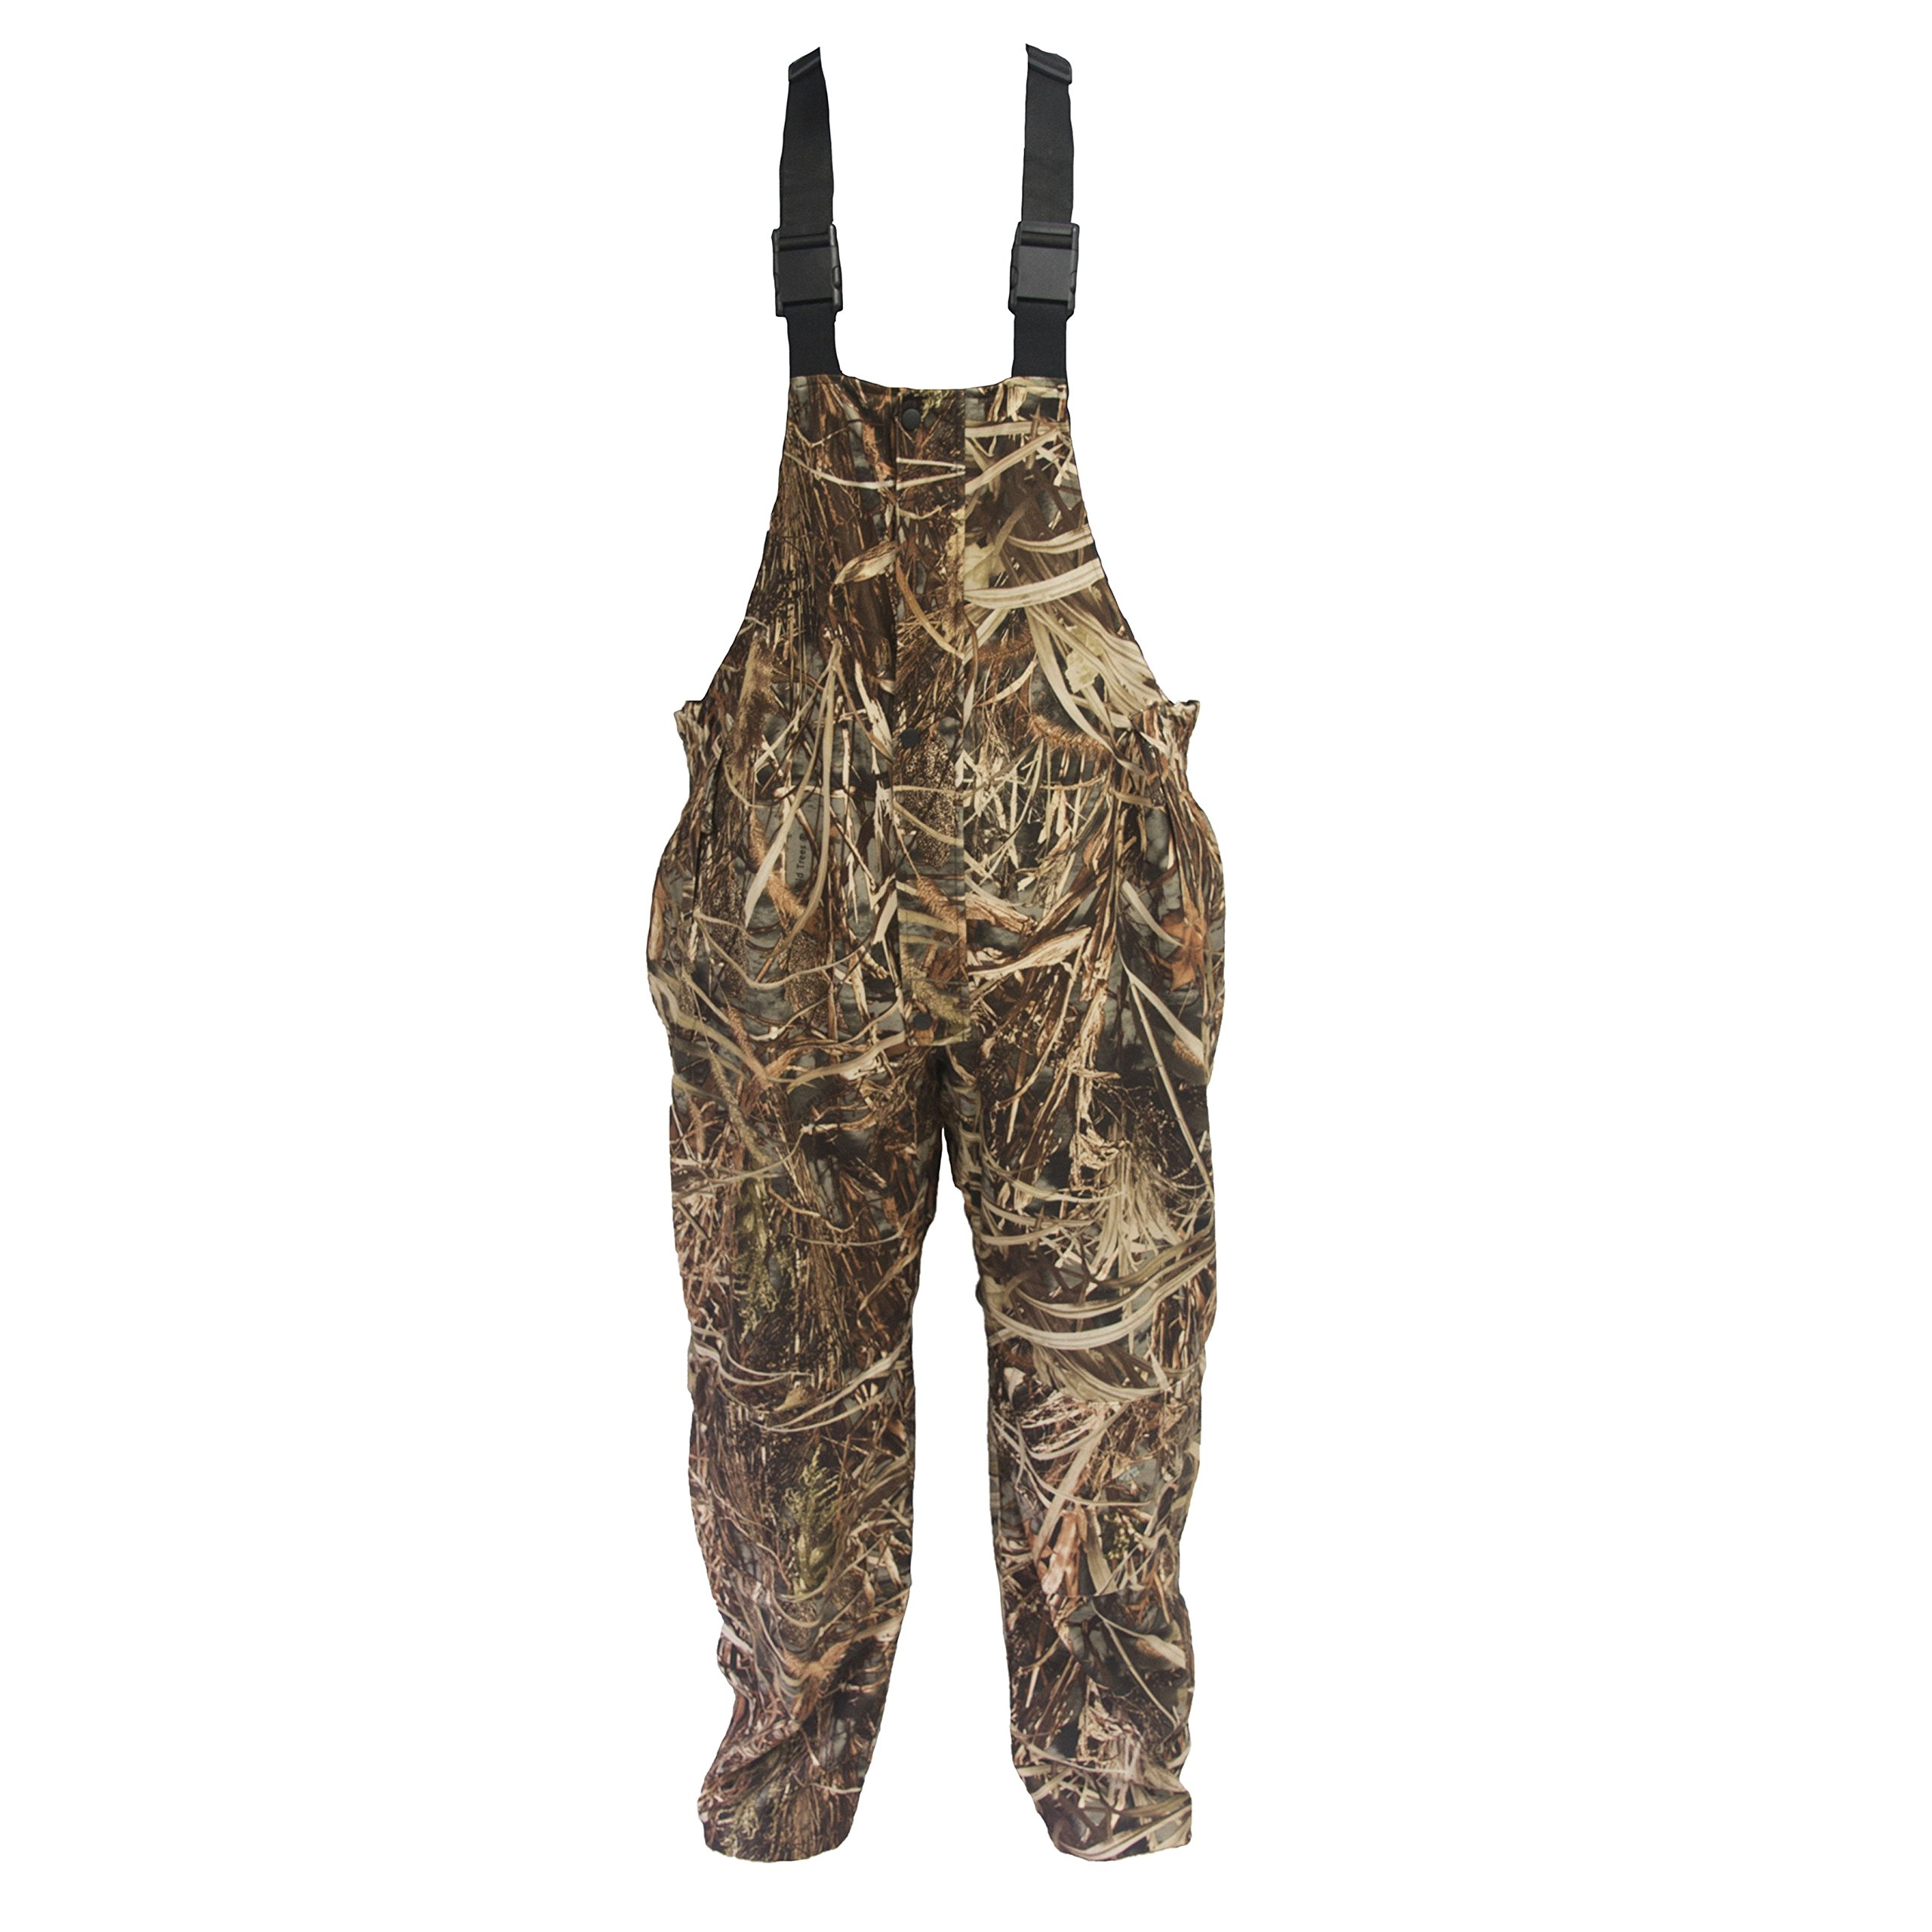 Wildfowler Waterproof Bibs, Large, Wildgrass by Wildfowler (WILUU)